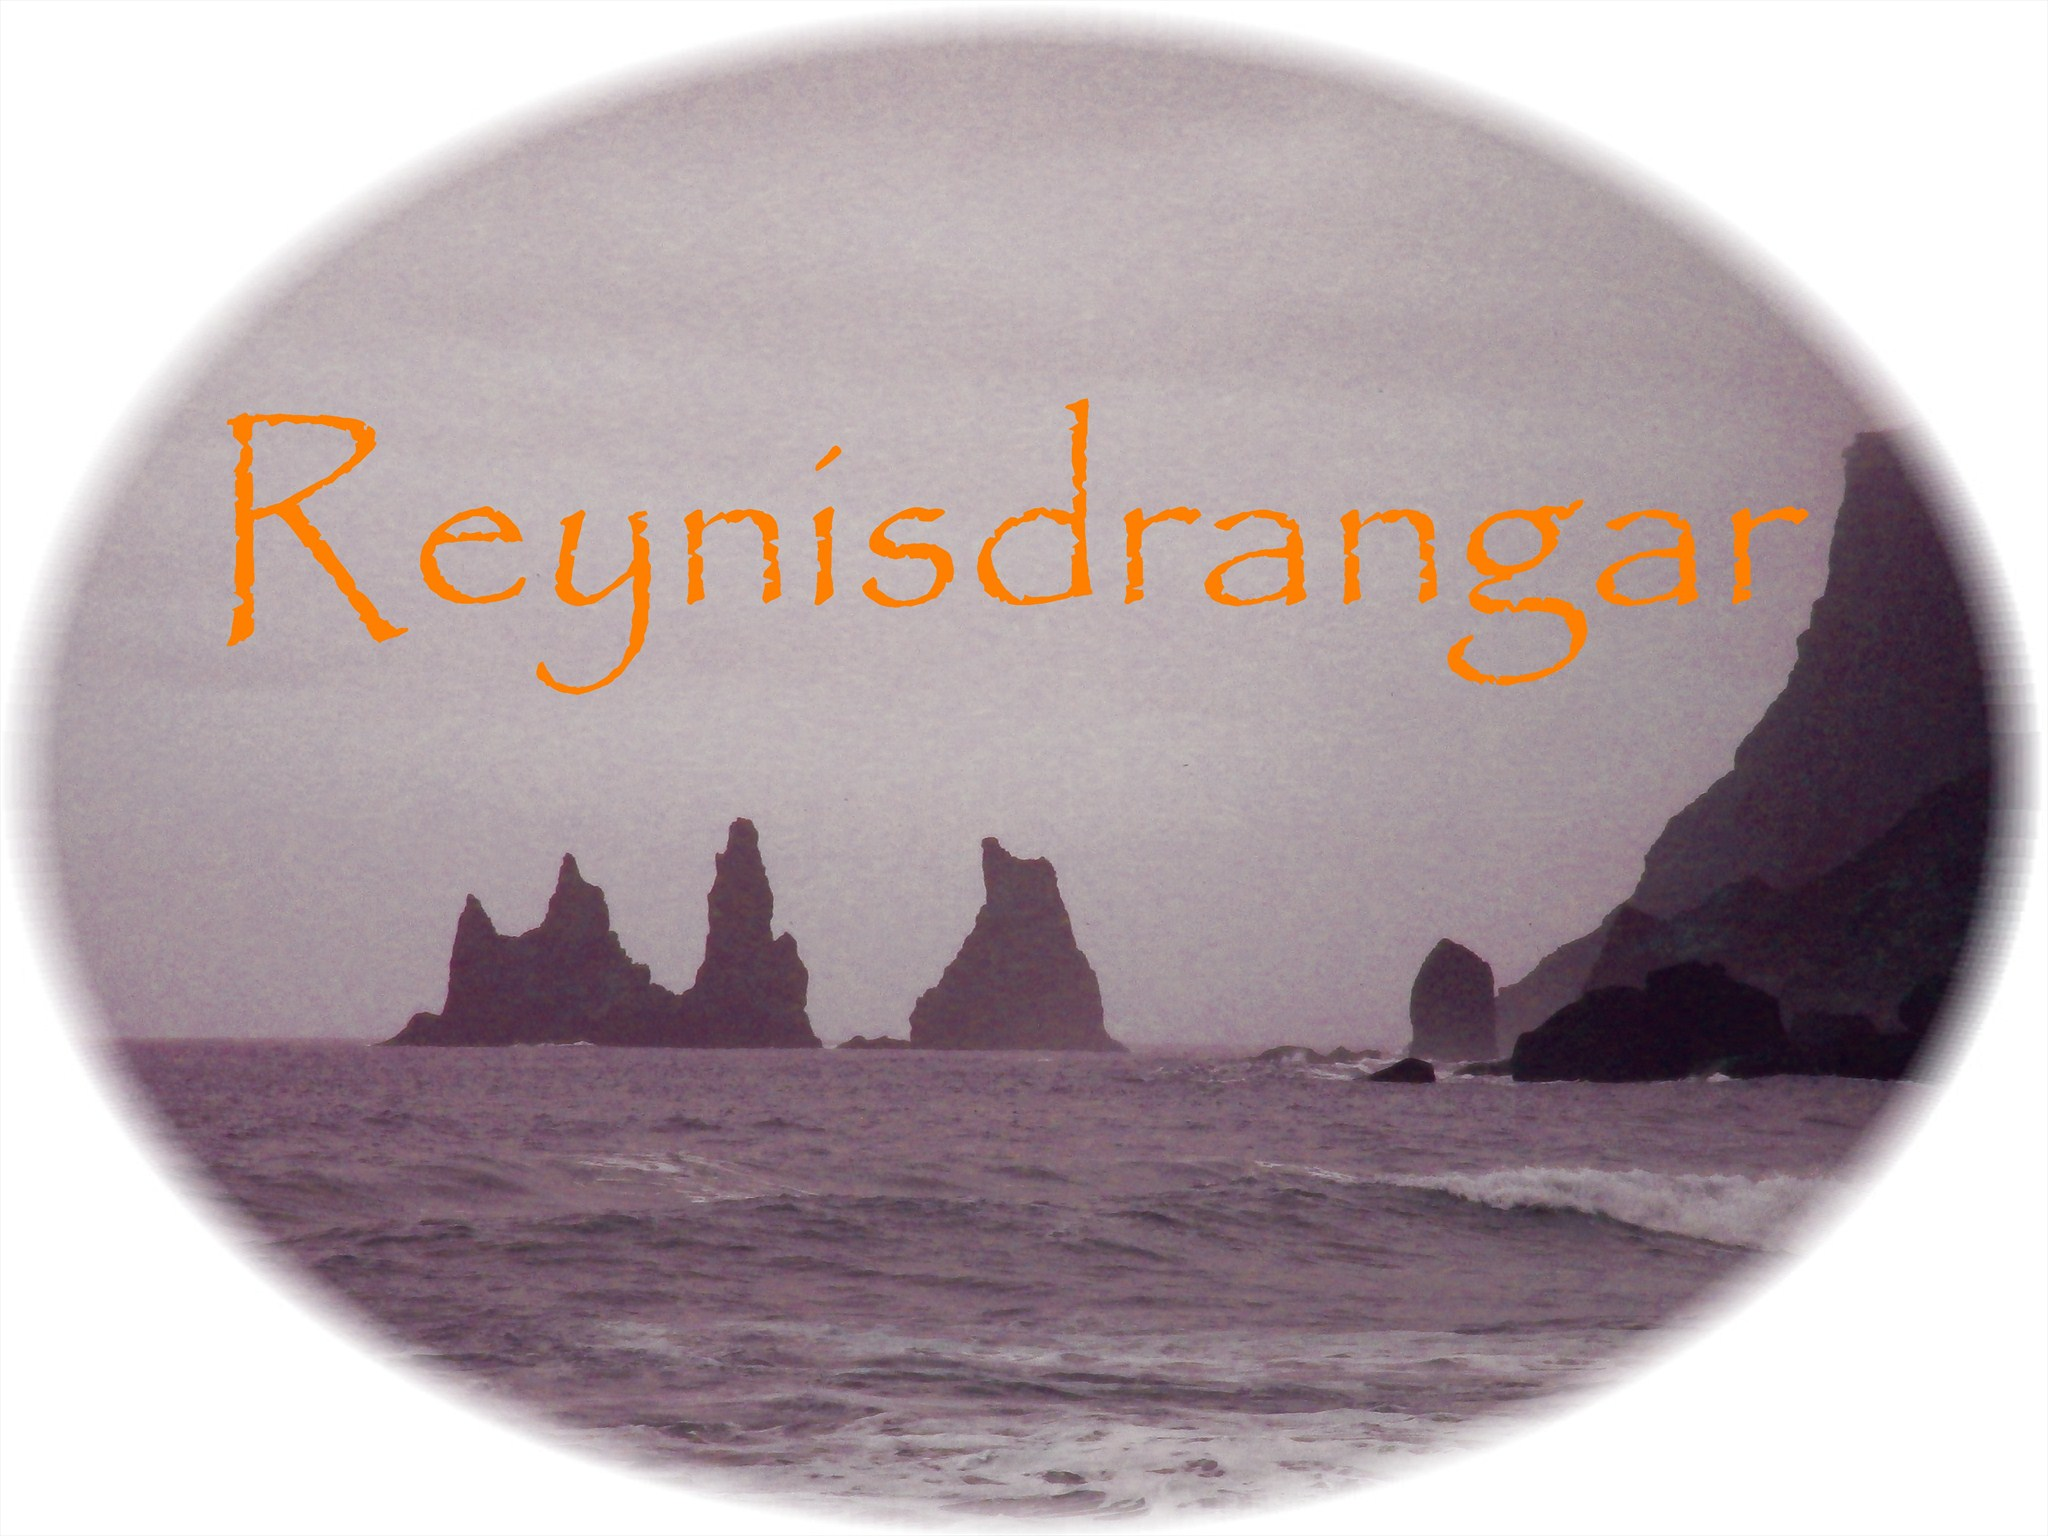 GC4E2NA Reynisdrangar (Earthcache) in Iceland created by ergodragonegg